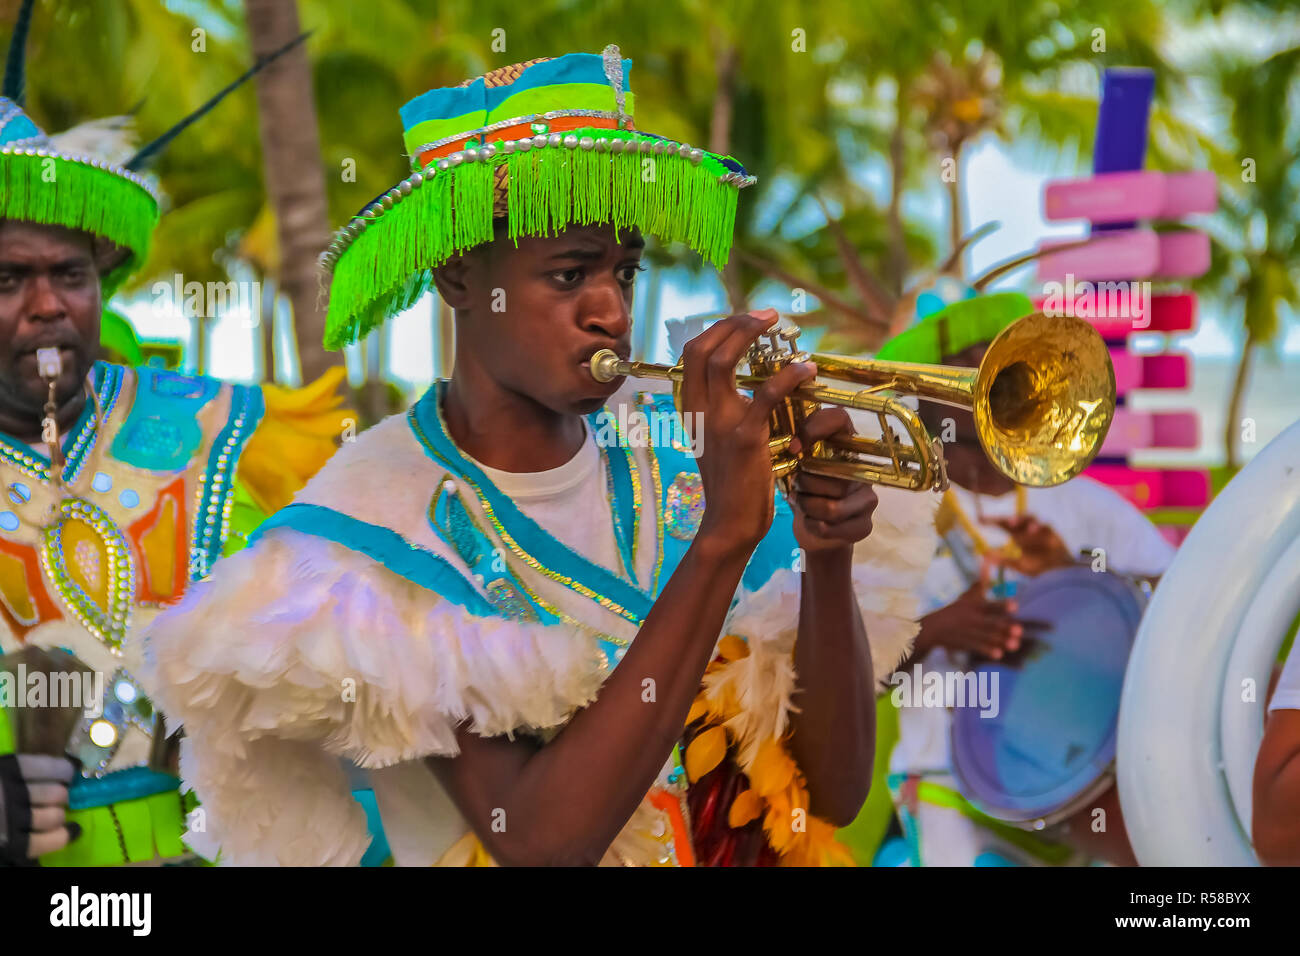 Freeport Bahamas - September 22, 2011: Male dancers dressed in traditional costumes performing at a Junkanoo festival playing a trumpet in Freeport, B - Stock Image